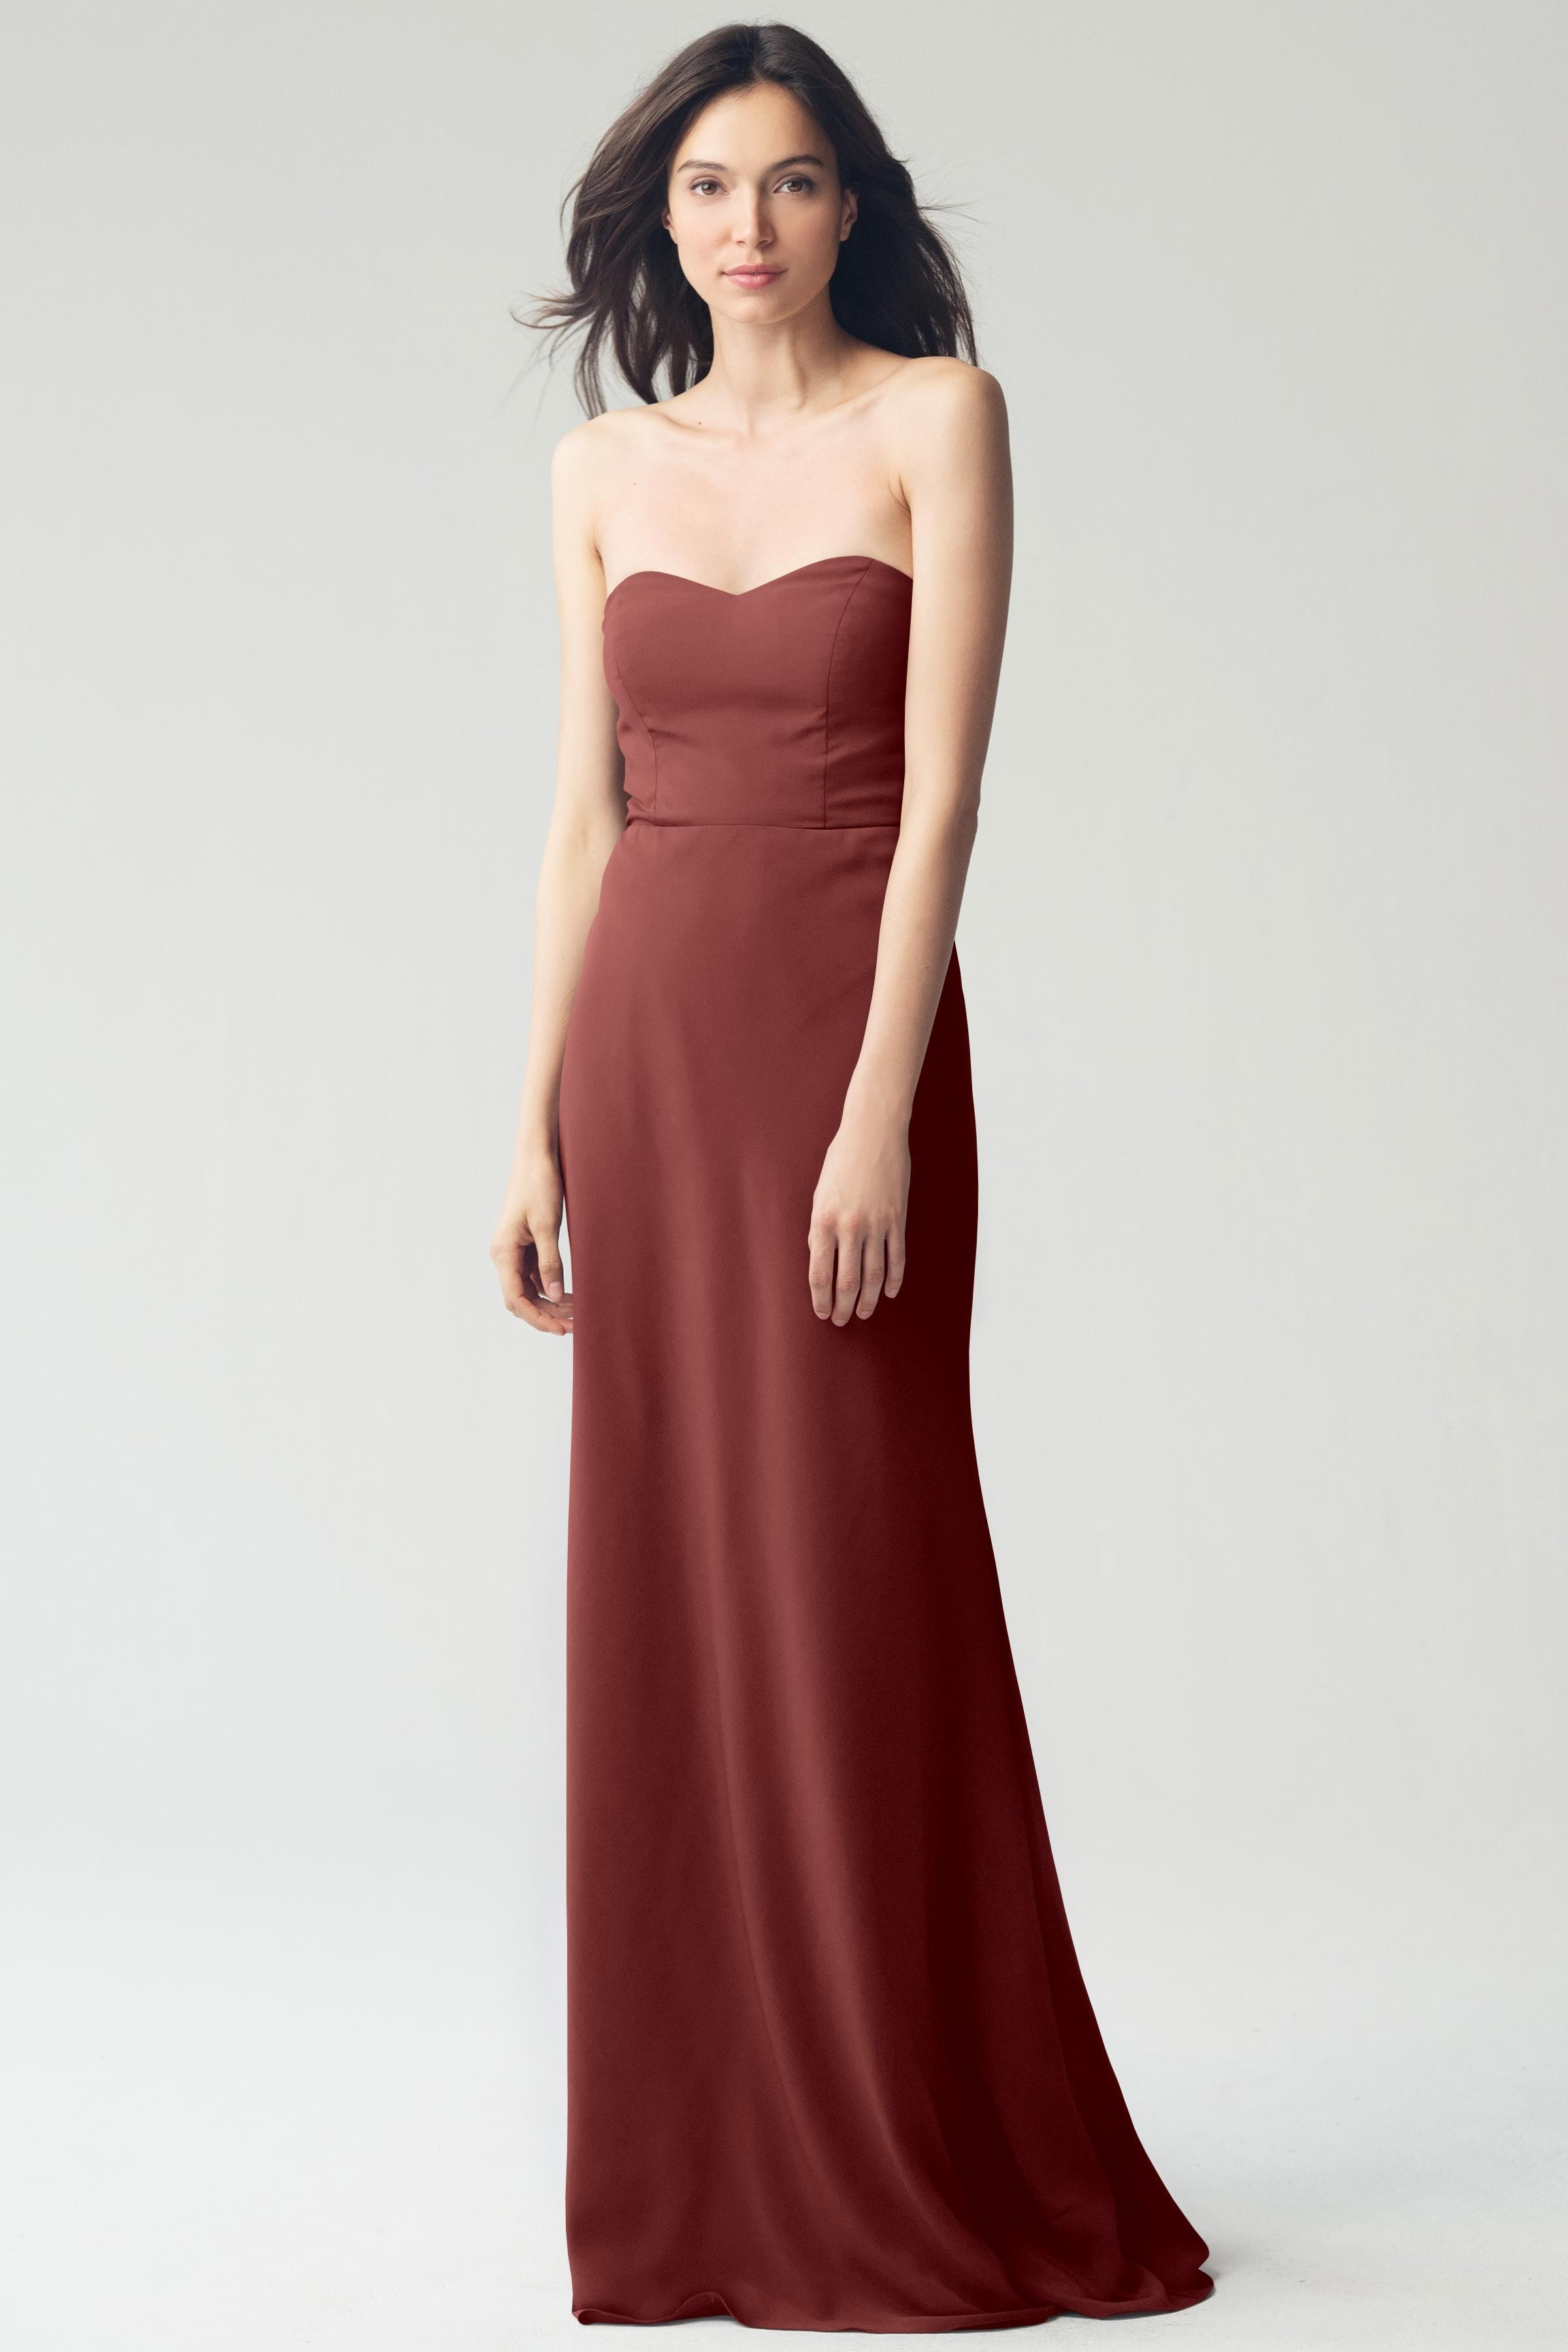 Strapless sweetheart dress by Jenny Yoo Bridesmaids style Kylie in Cinnamon Rose